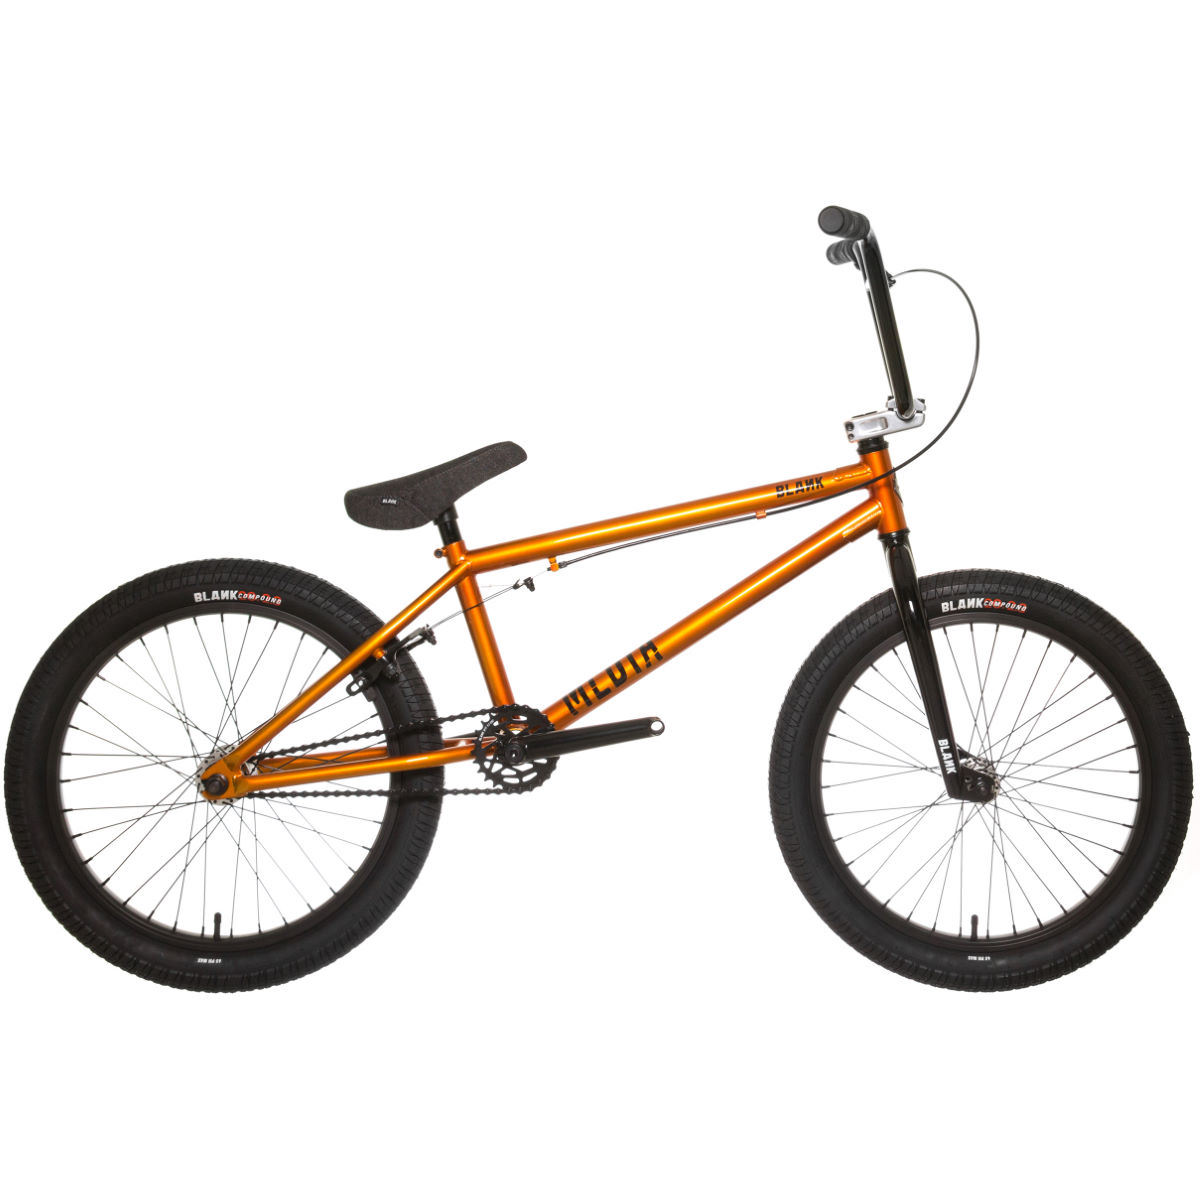 Blank Media BMX Bike (2019) - Bicicletas de BMX Freestyle